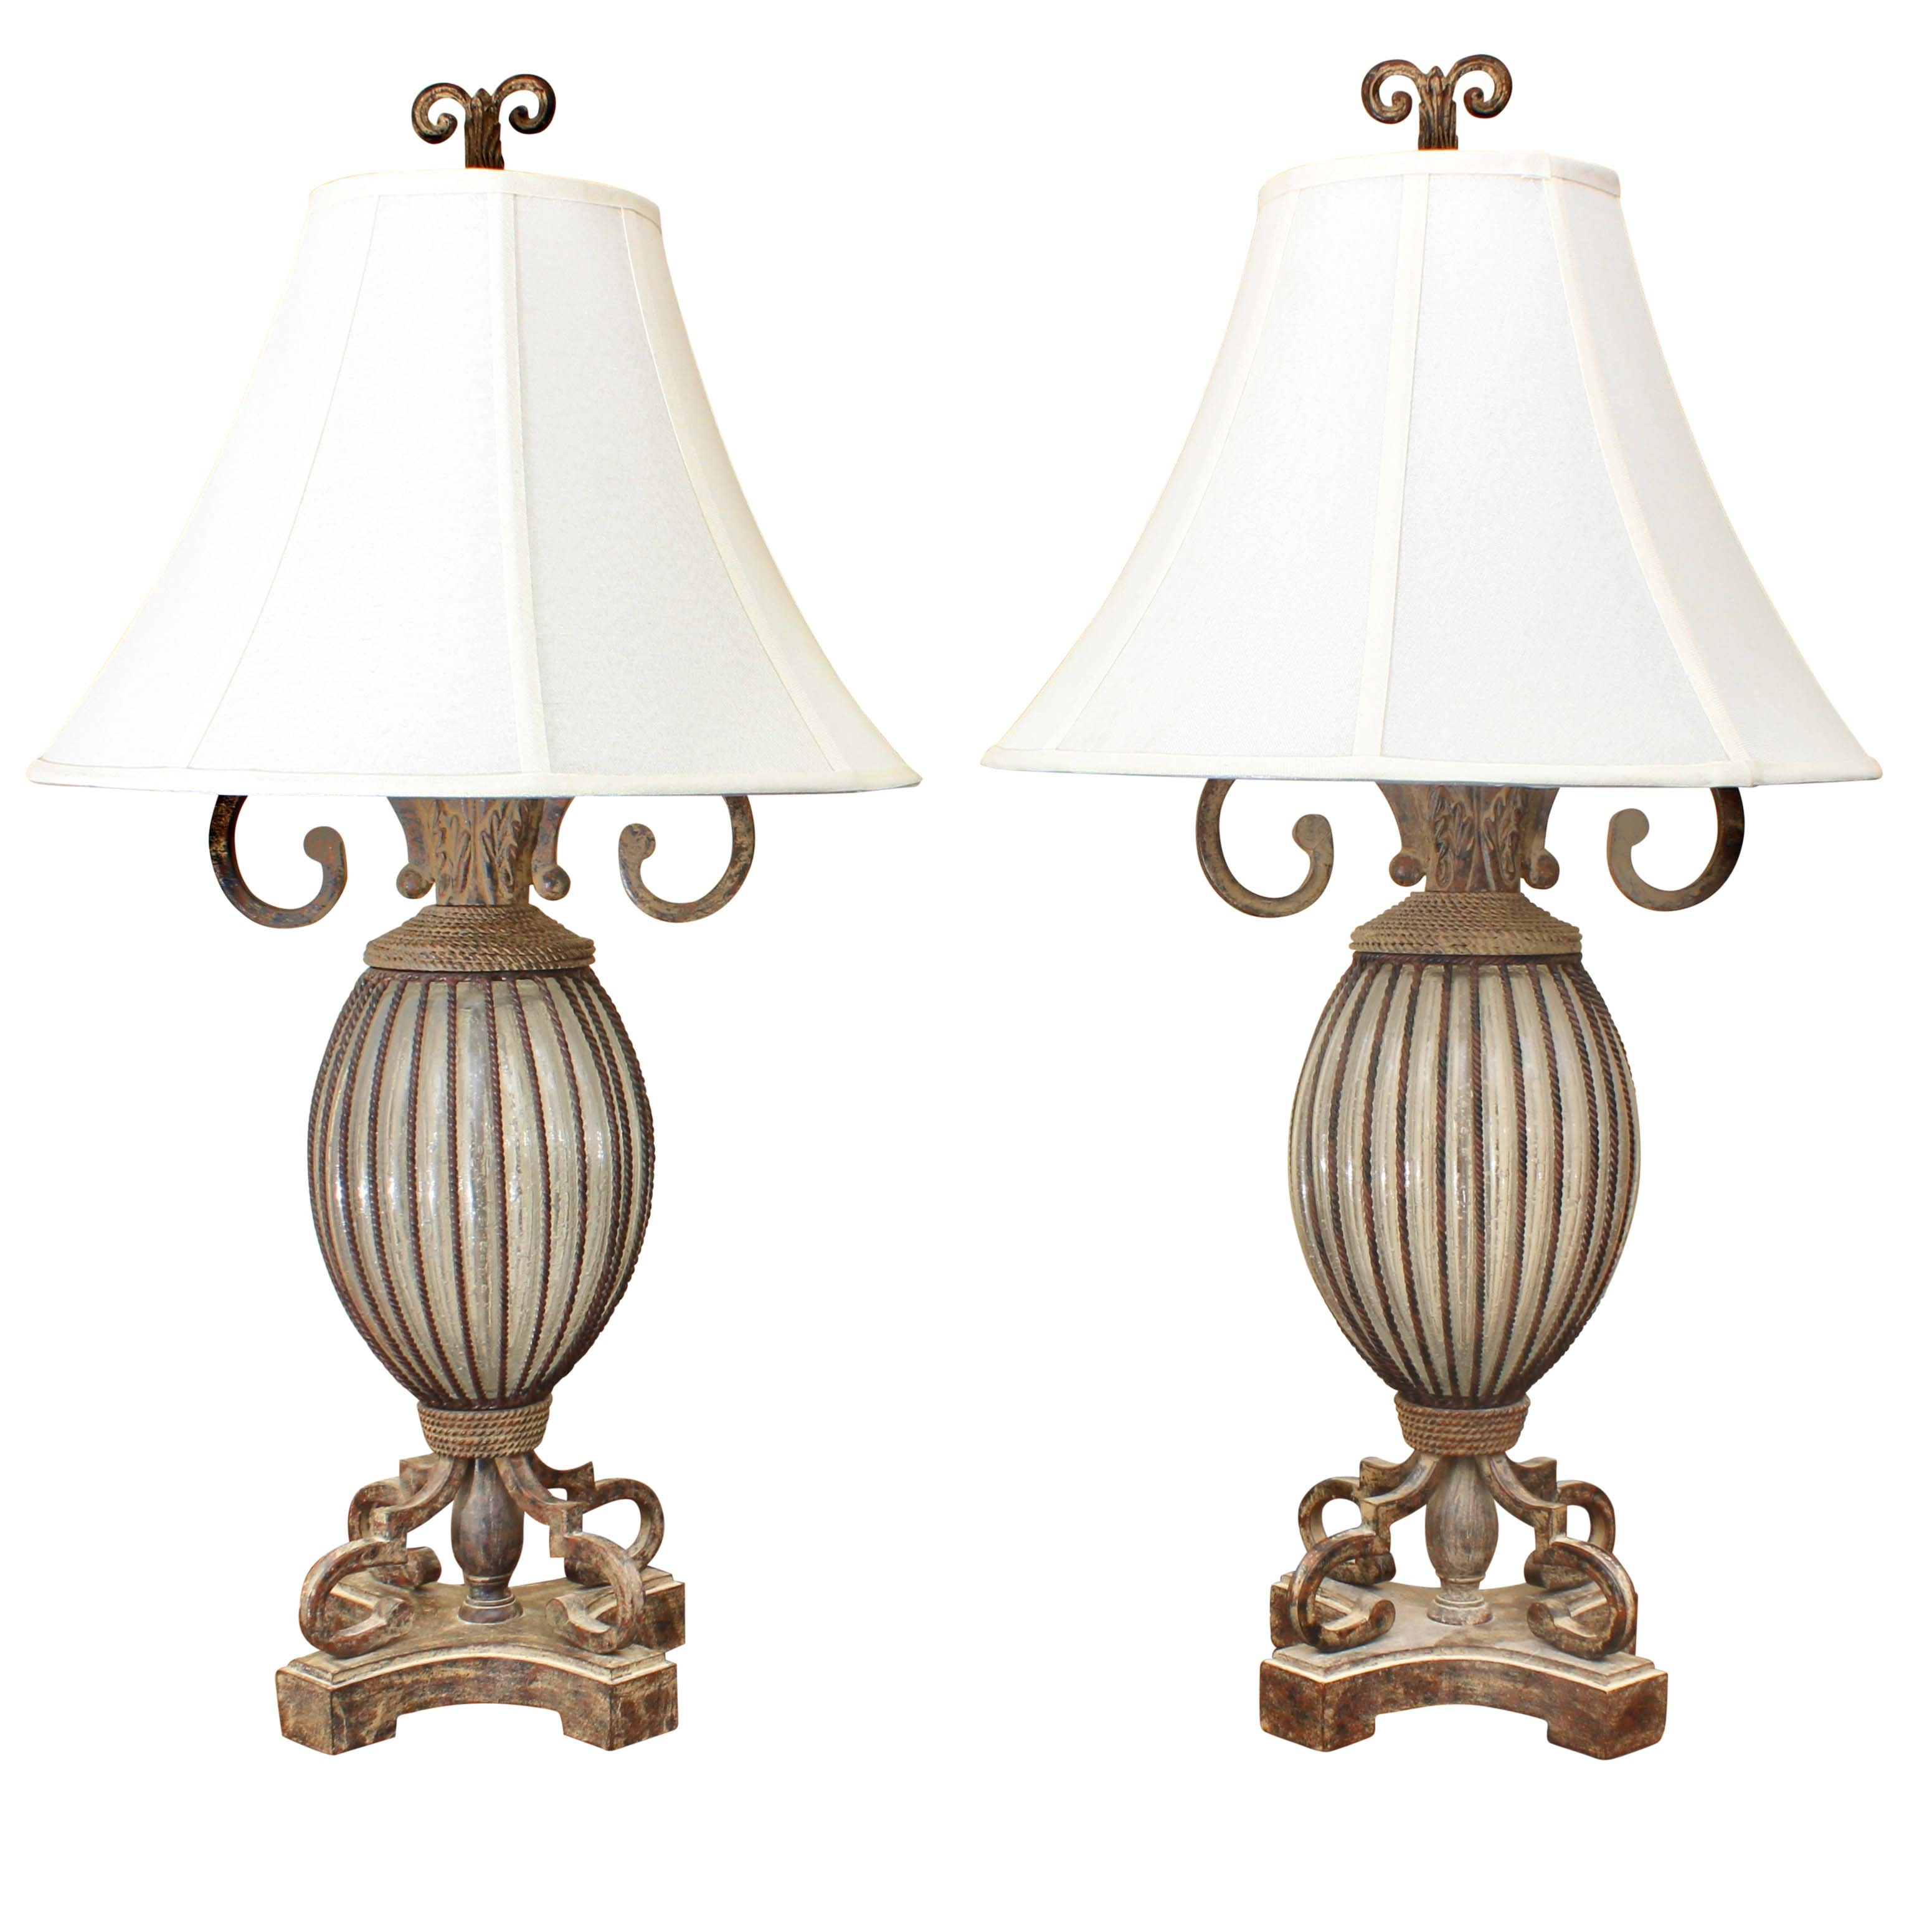 Metal & Glass Table Lamps With Canvas Bell Shades